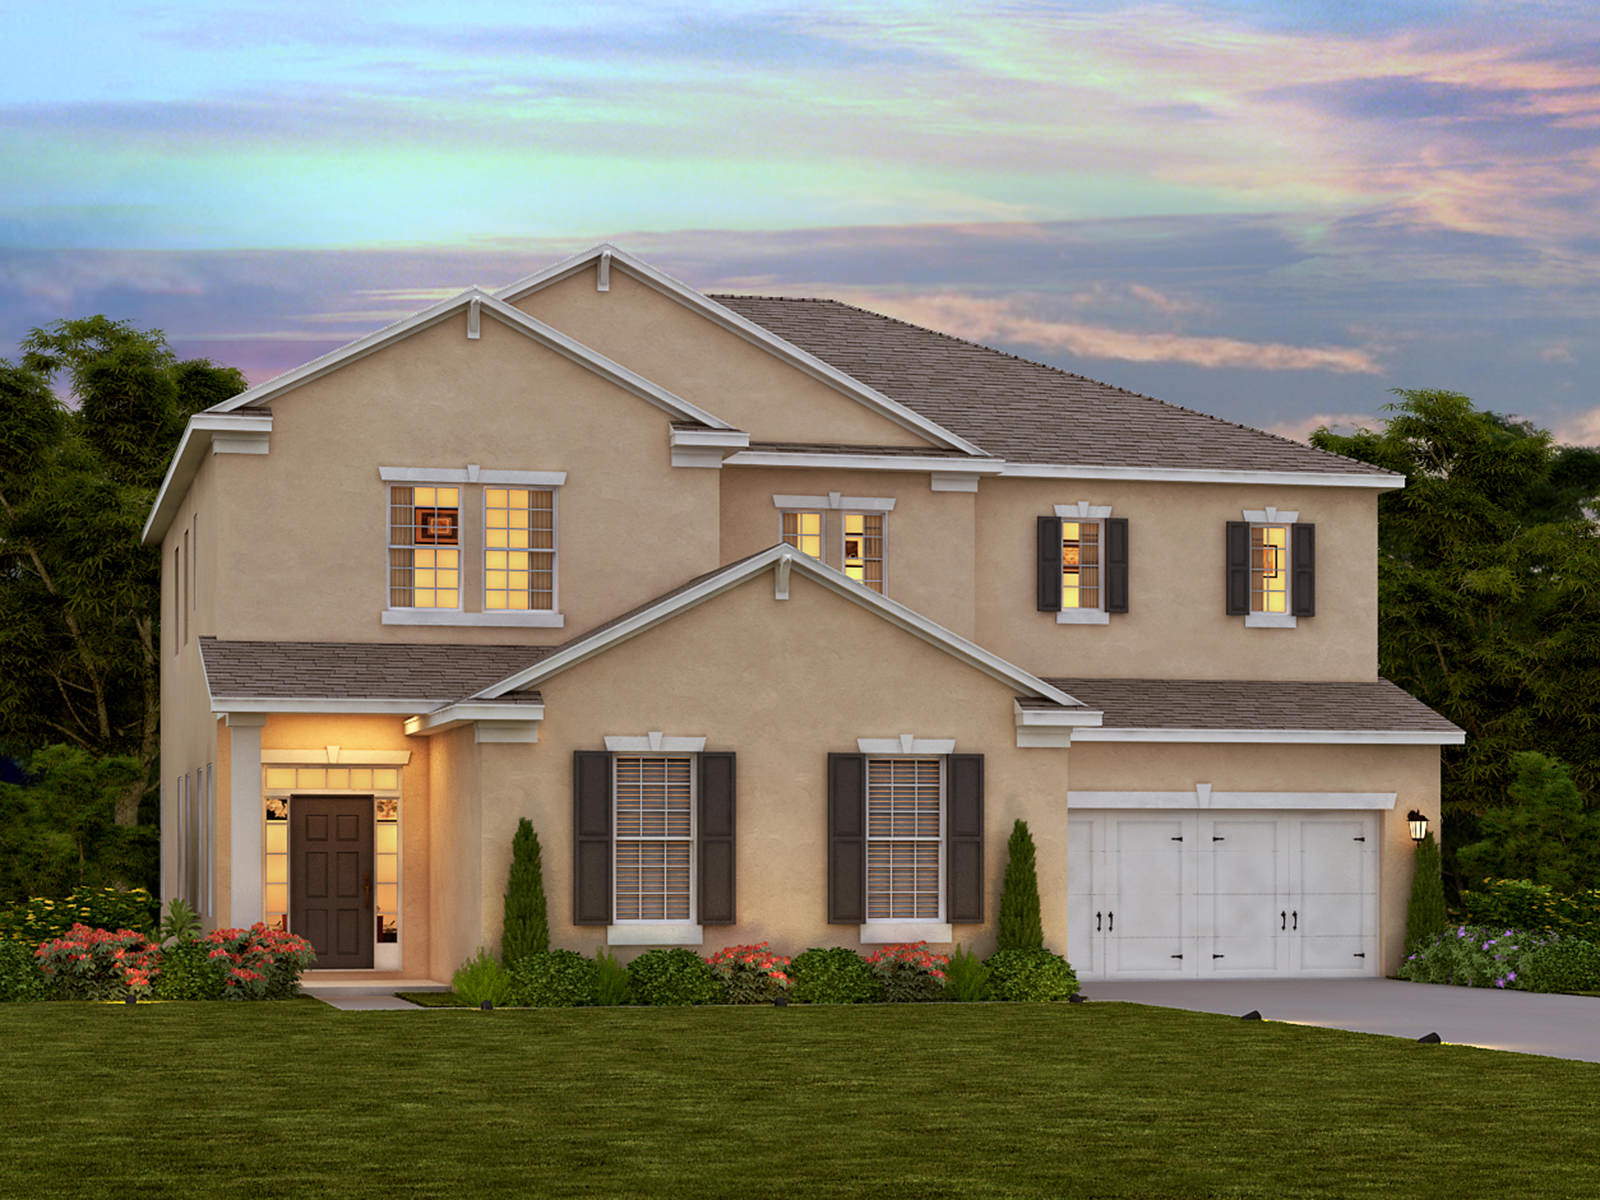 4436 OLYMPIC CLUBWAY on taylor morrison home plans, lennar home plans, white home plans, toll brothers home plans, beazer home plans, centex home plans, mercedes home plans, dr horton home plans,